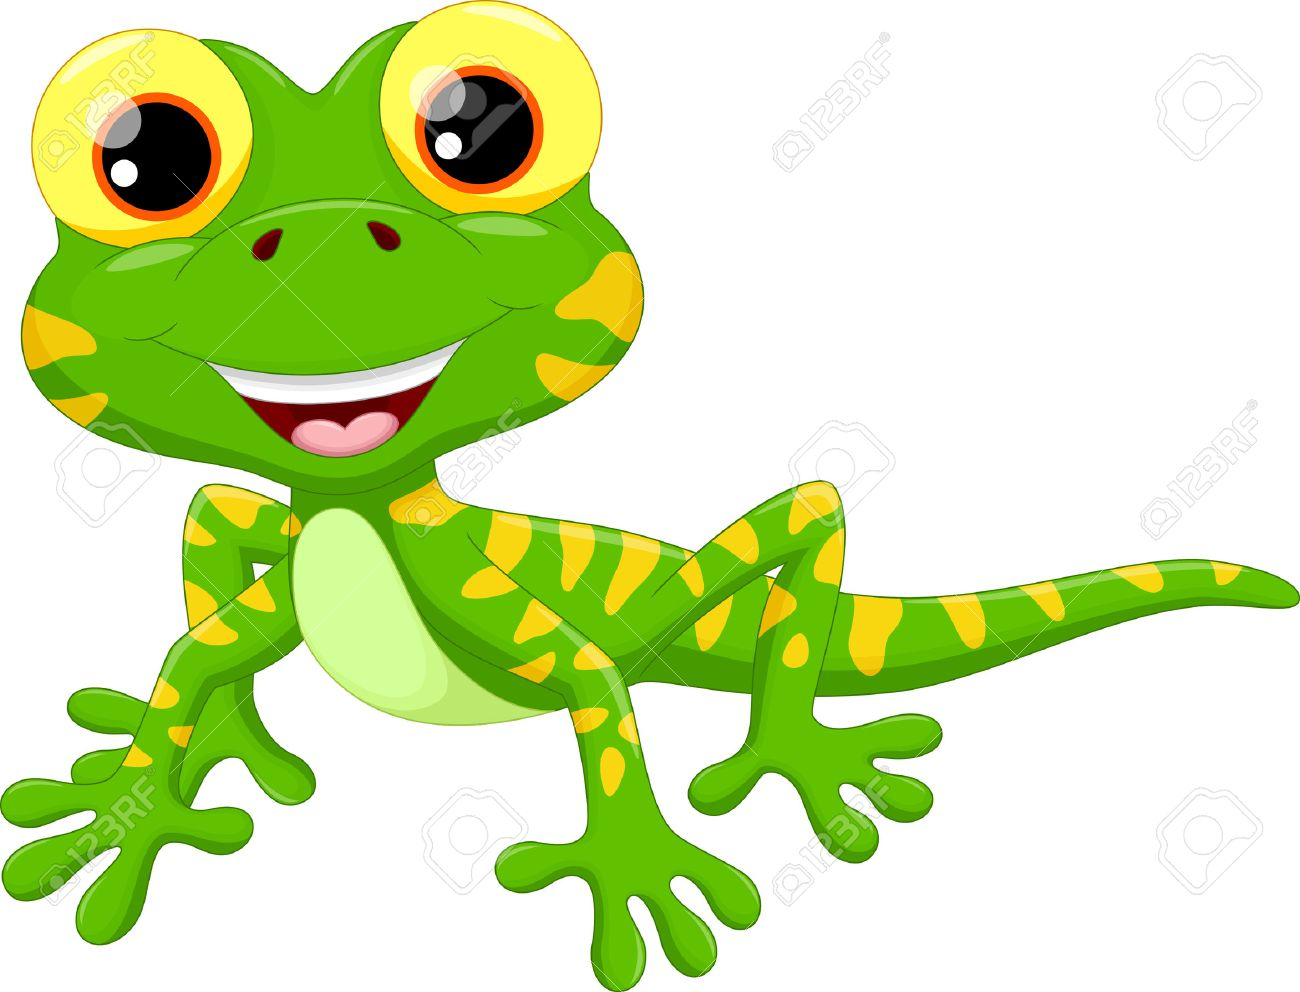 Vector illustration of cute lizard cartoon isolated on white background - 48070237